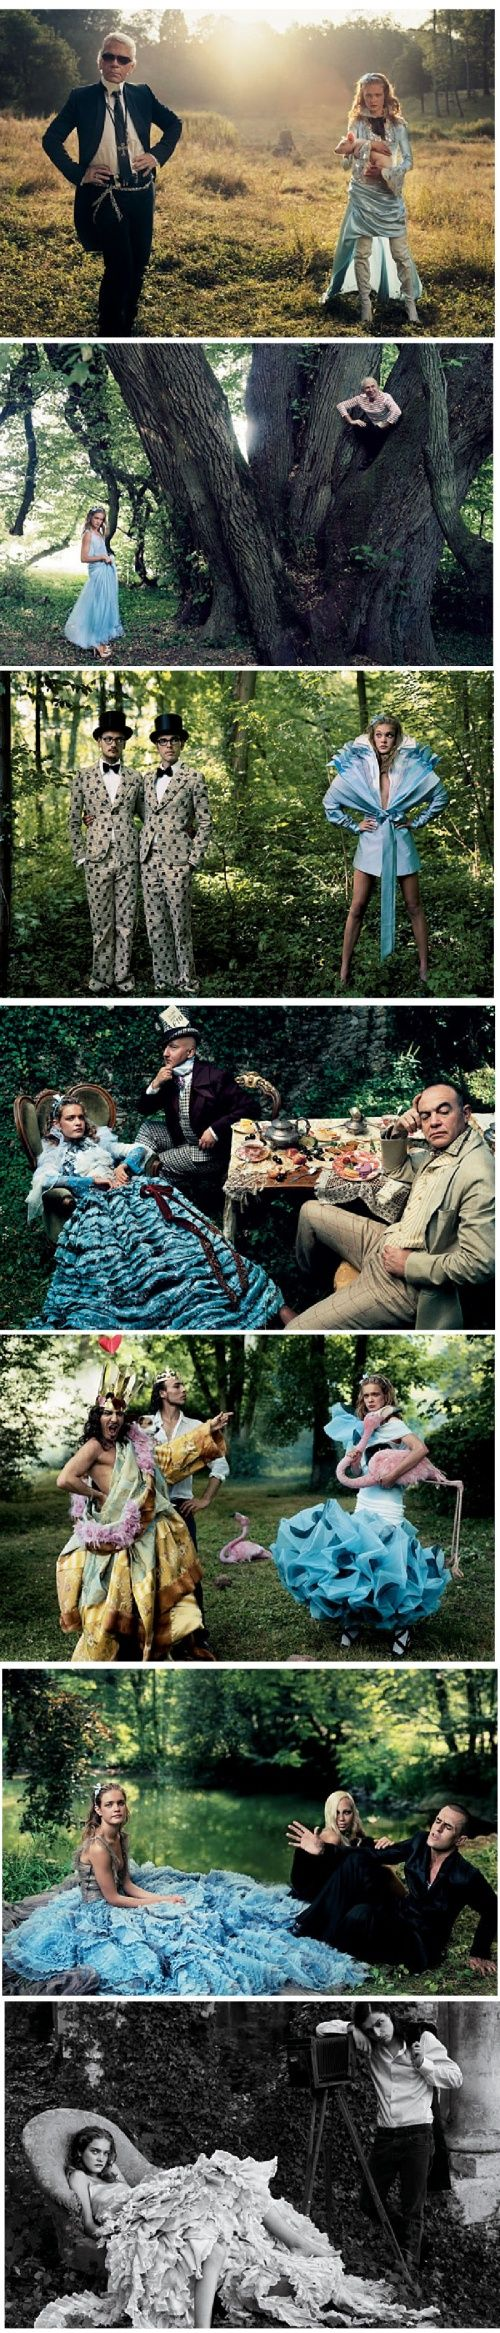 "Photography legend, Annie Leibovitz did a 'Alice in Wonderland' inspired photo shoot for Vogue Magazine featuring fashion icons and their designs … The following gowns would translate brilliantly into wedding gowns, and would make a perfect ""something blue!"""